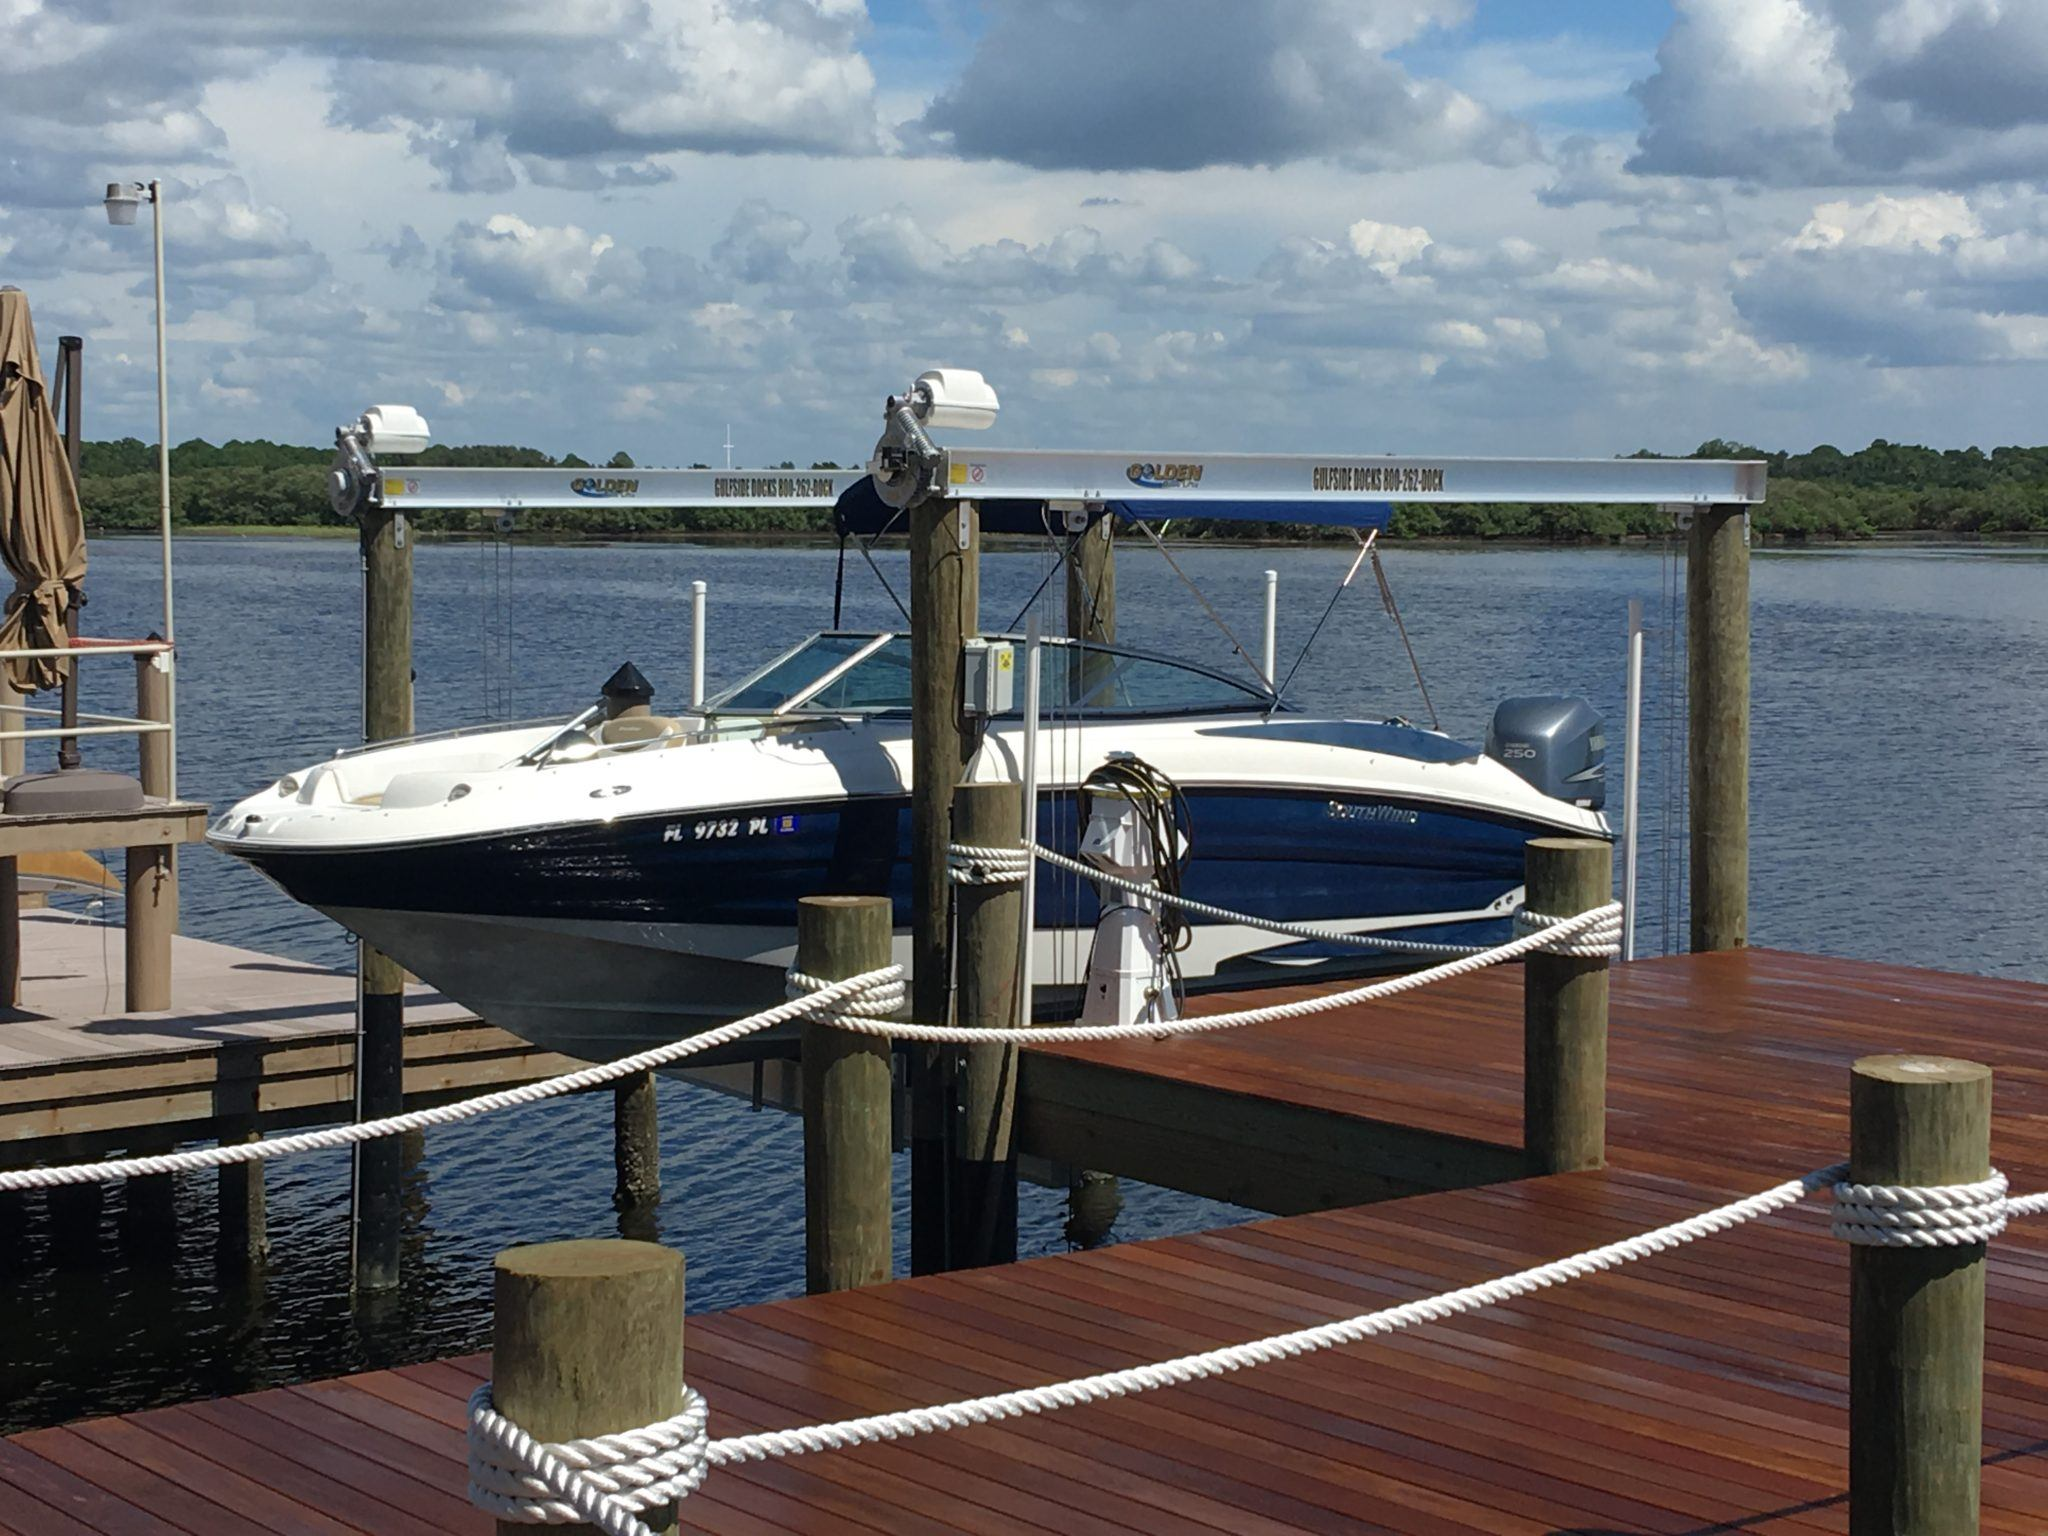 A Golden aluminum boat lift with Golden Sea-Drives attached to a stationary dock